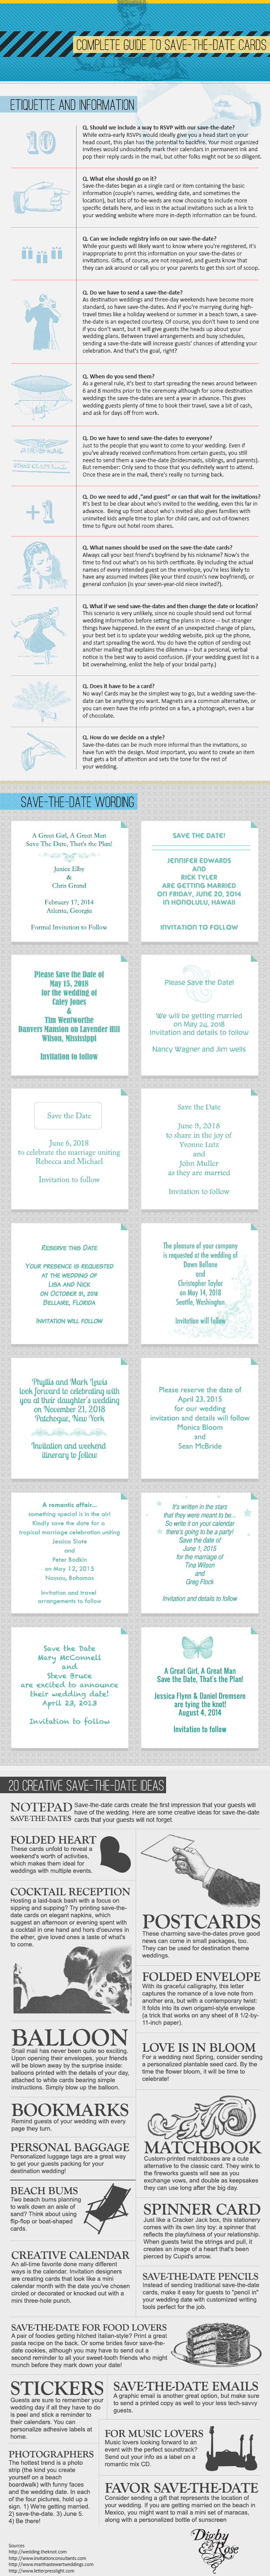 Guide to Save the Date Cards